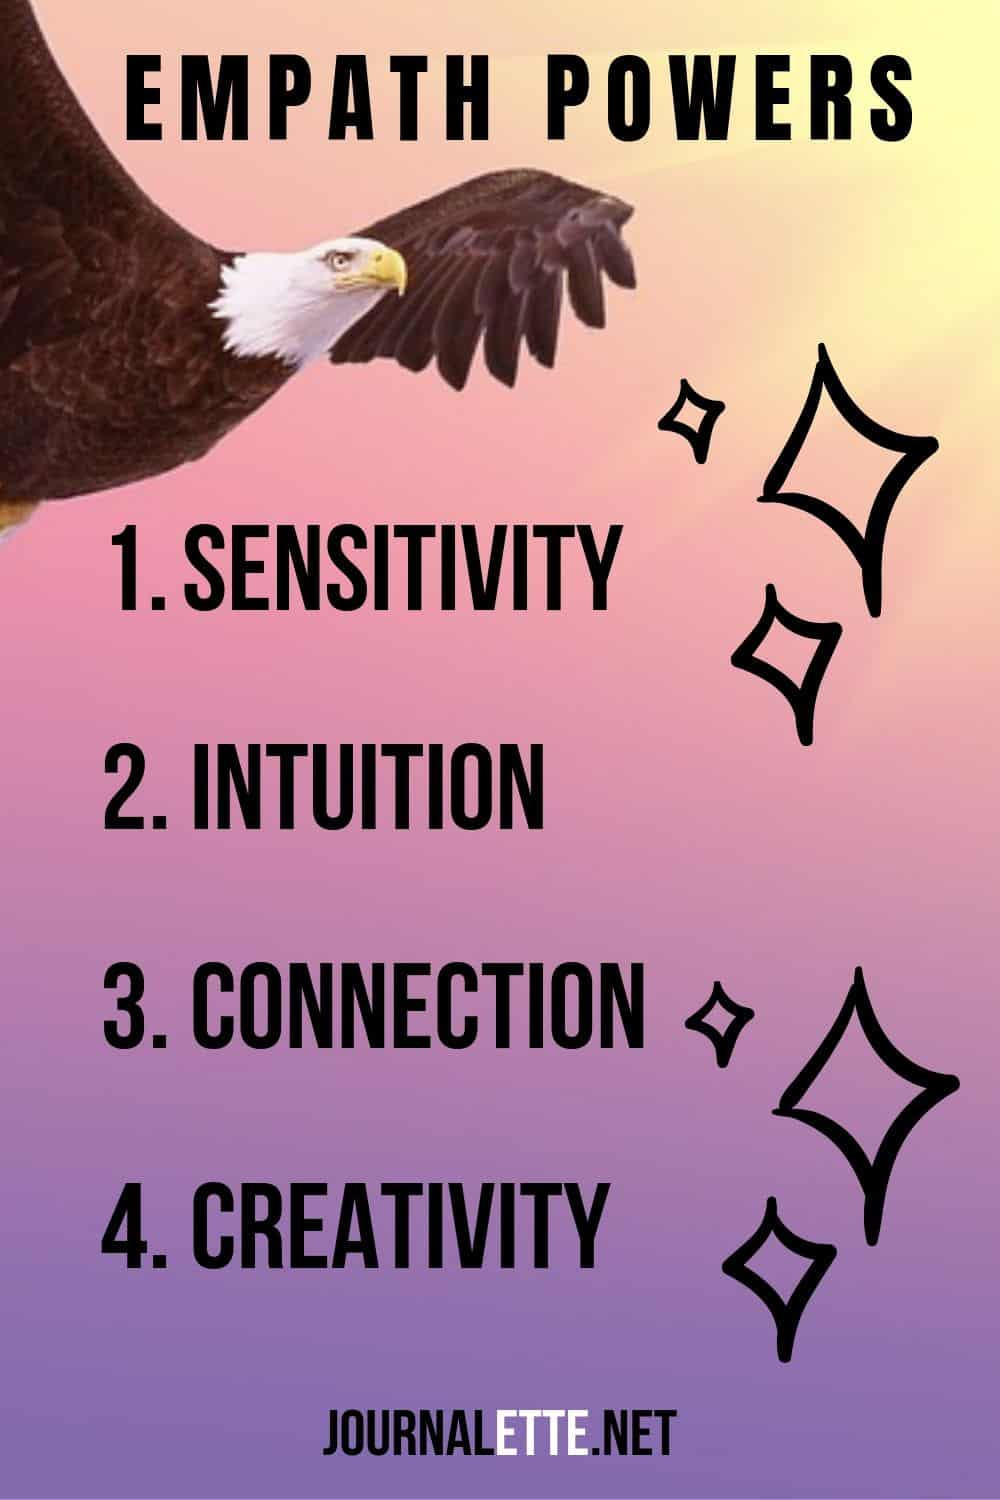 image with text empath powers and image of eagle